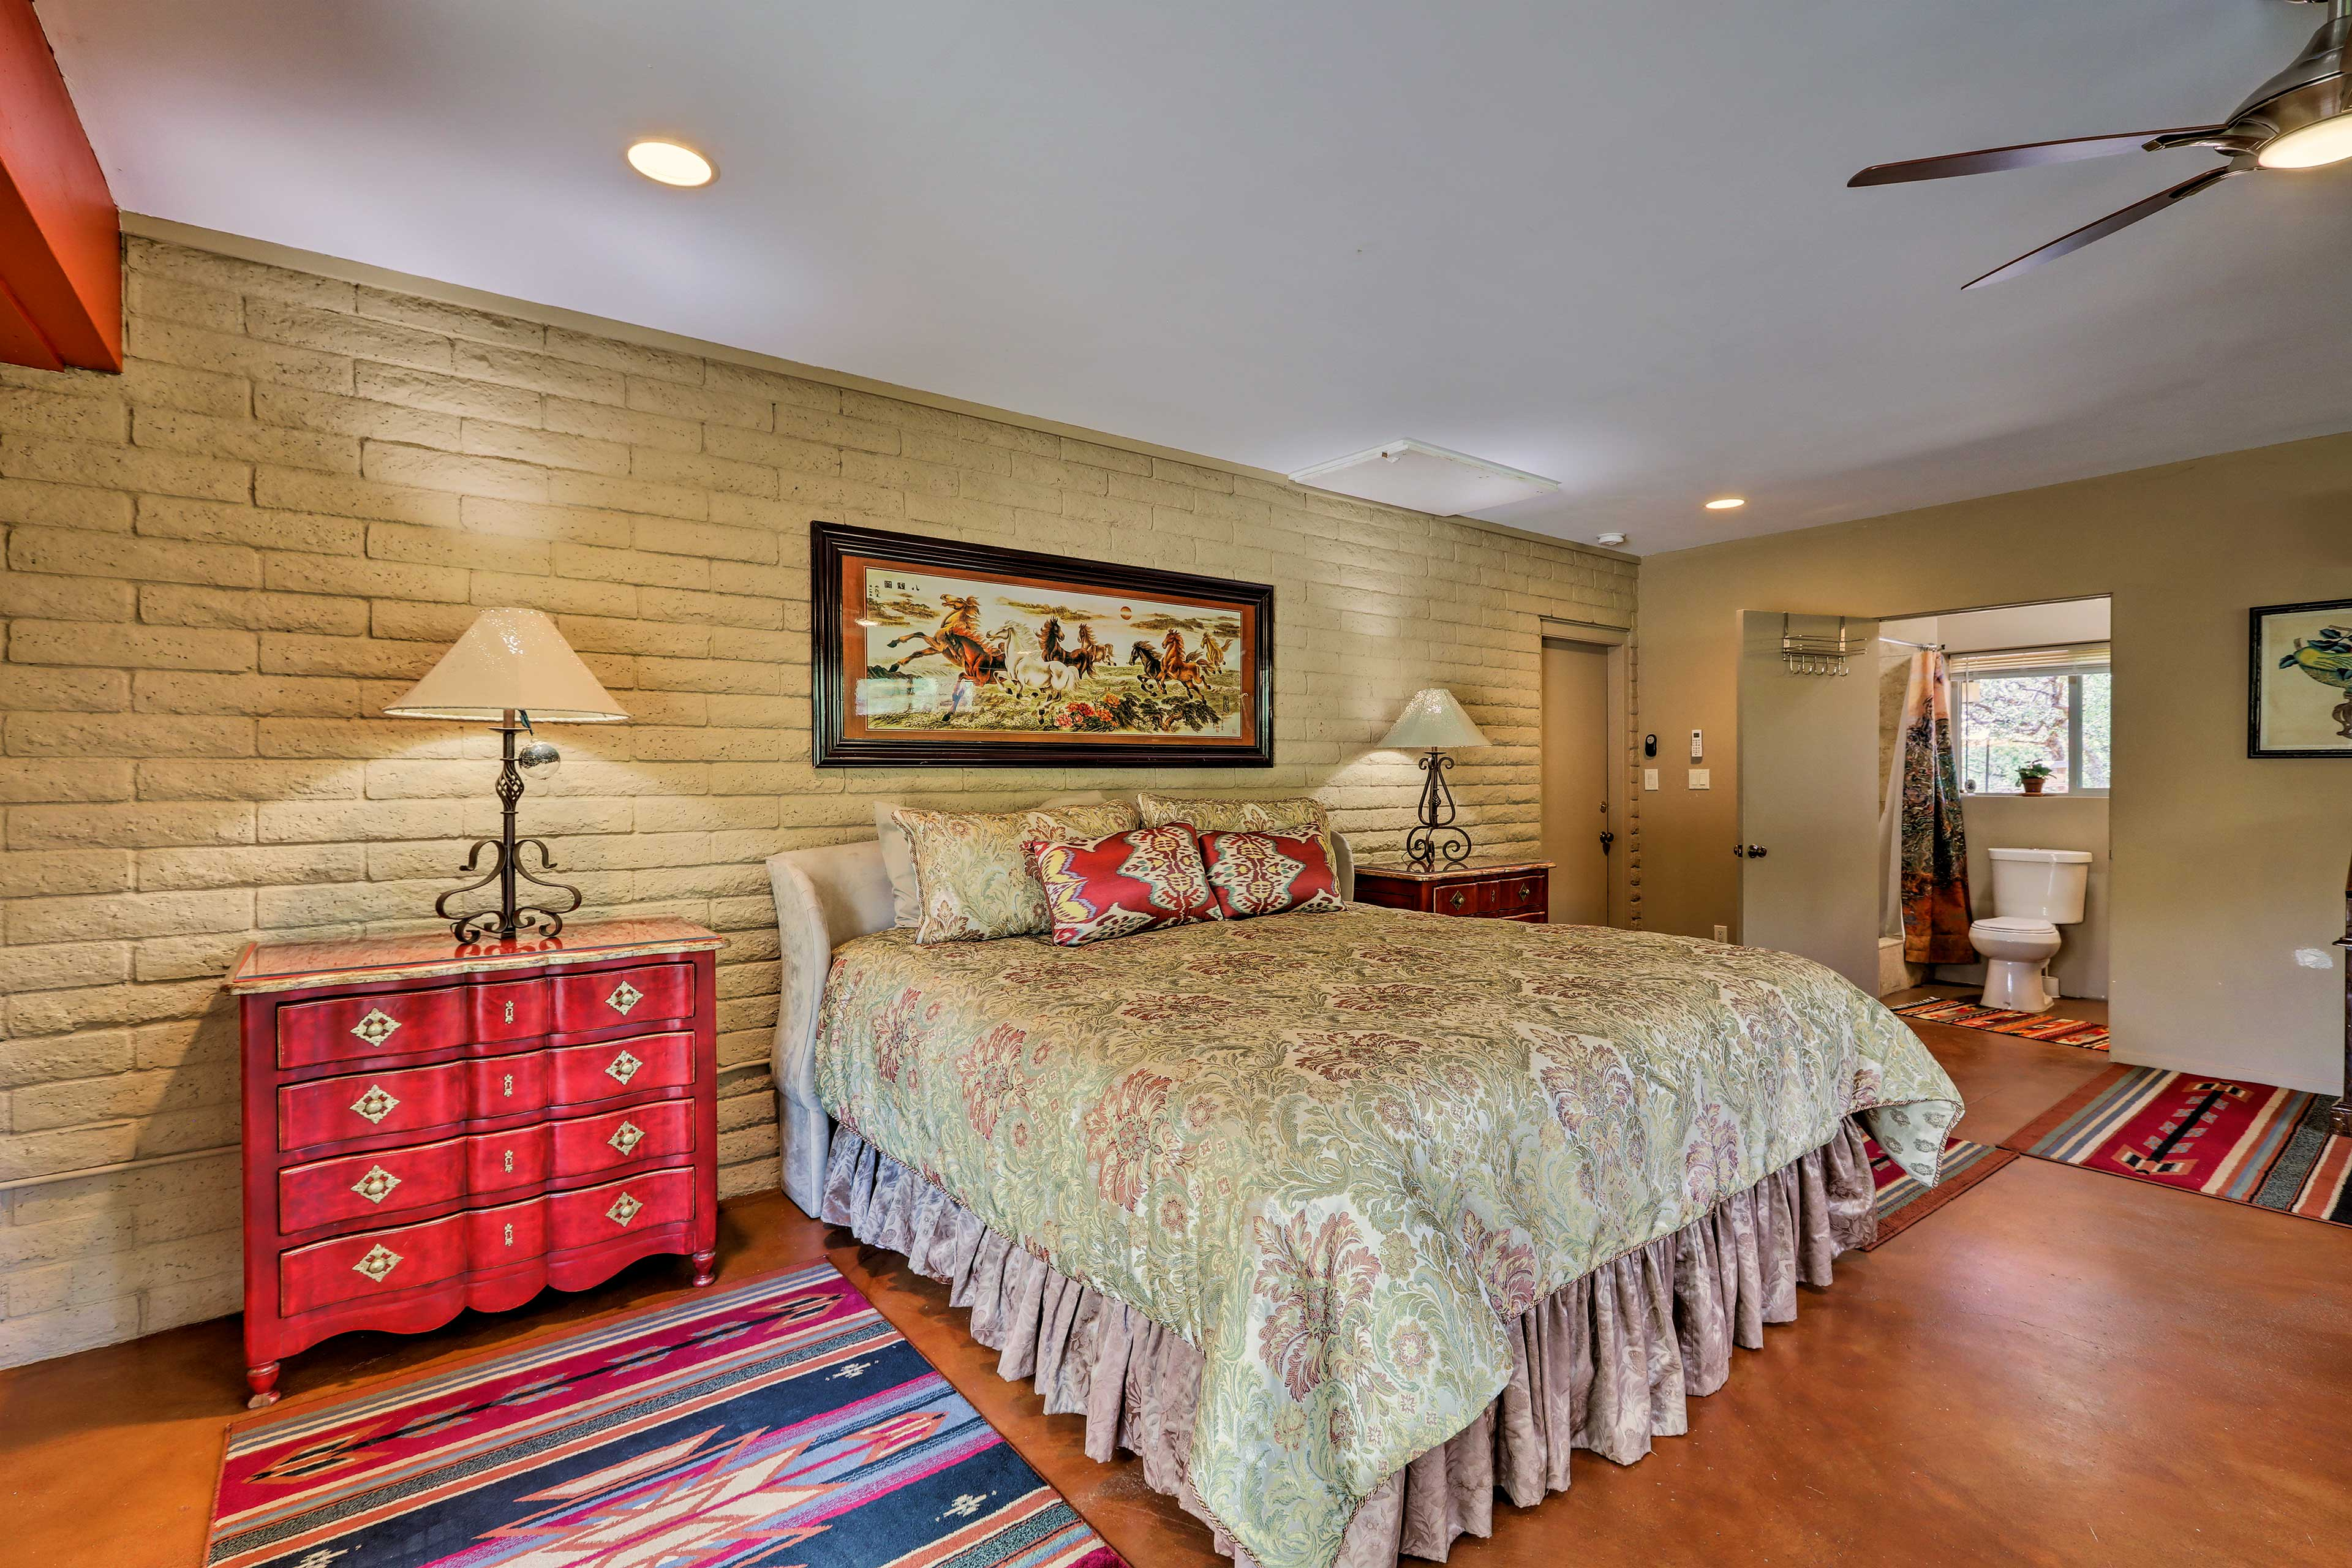 The studio boasts a plush king-sized bed.